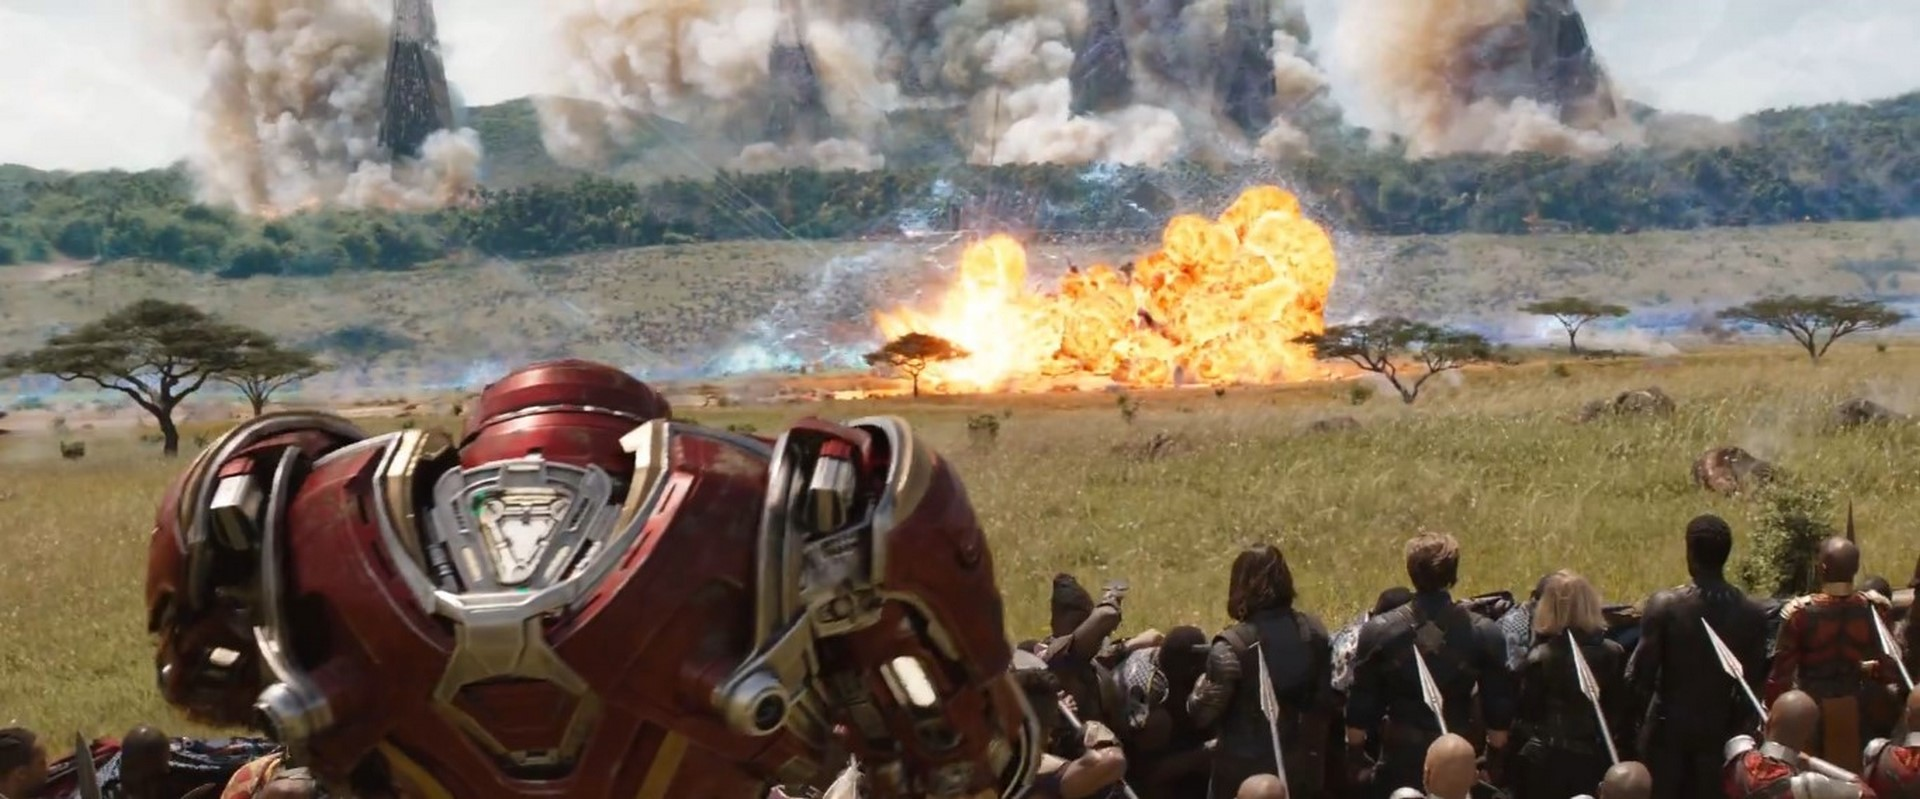 Battle of Wakanda | Marvel Cinematic Universe Wiki | Fandom